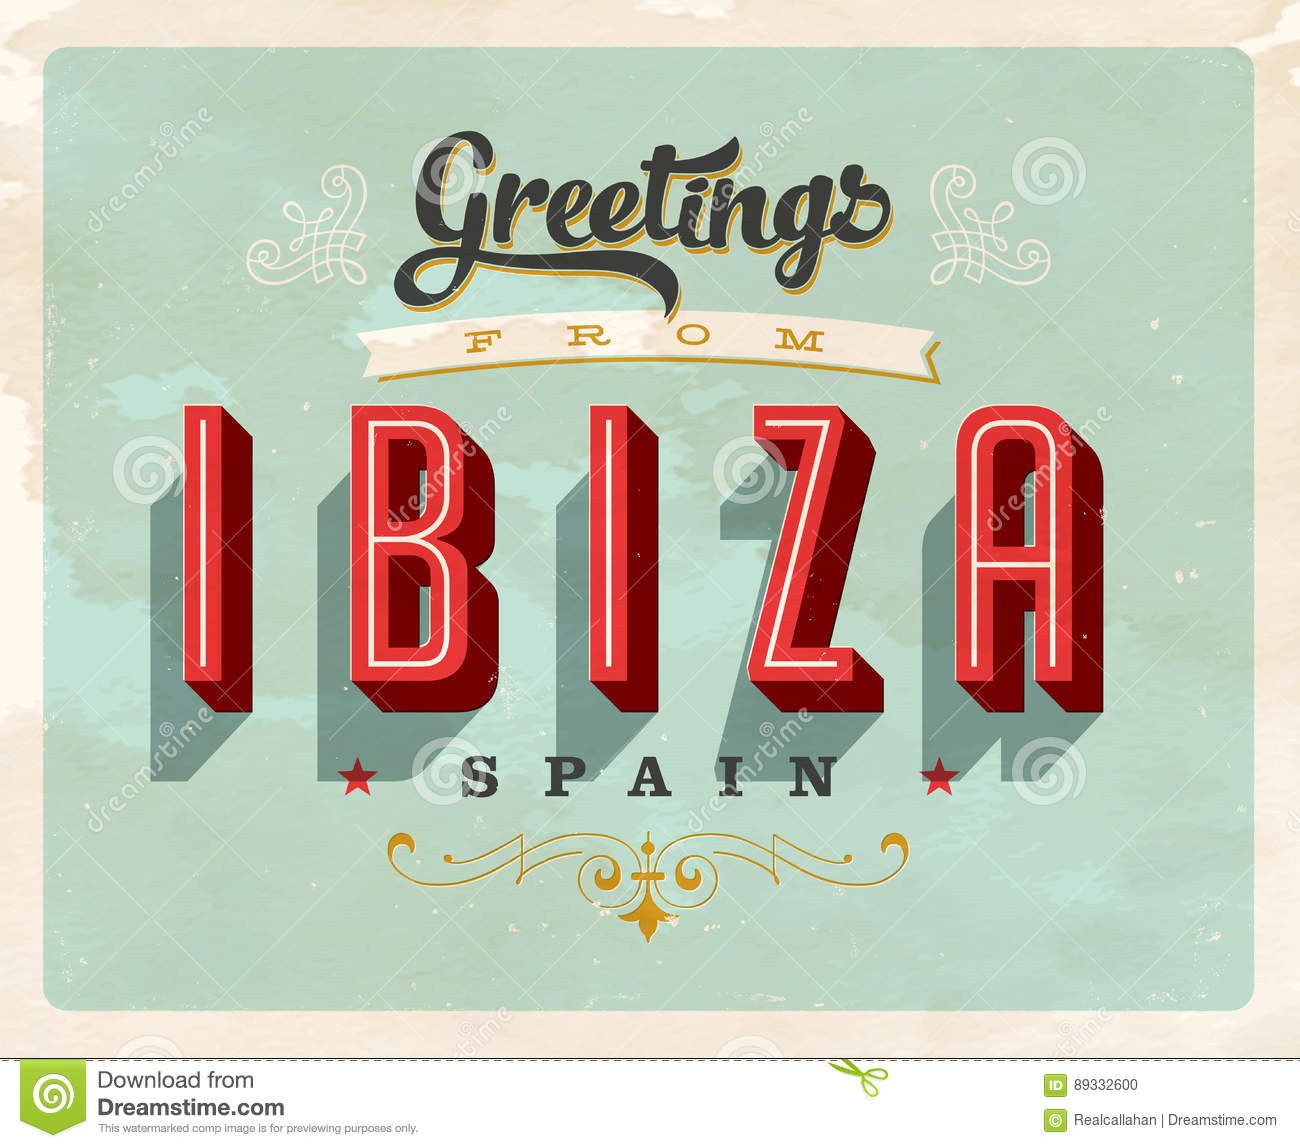 Vintage greetings from ibiza spain vacation card stock vector download comp m4hsunfo